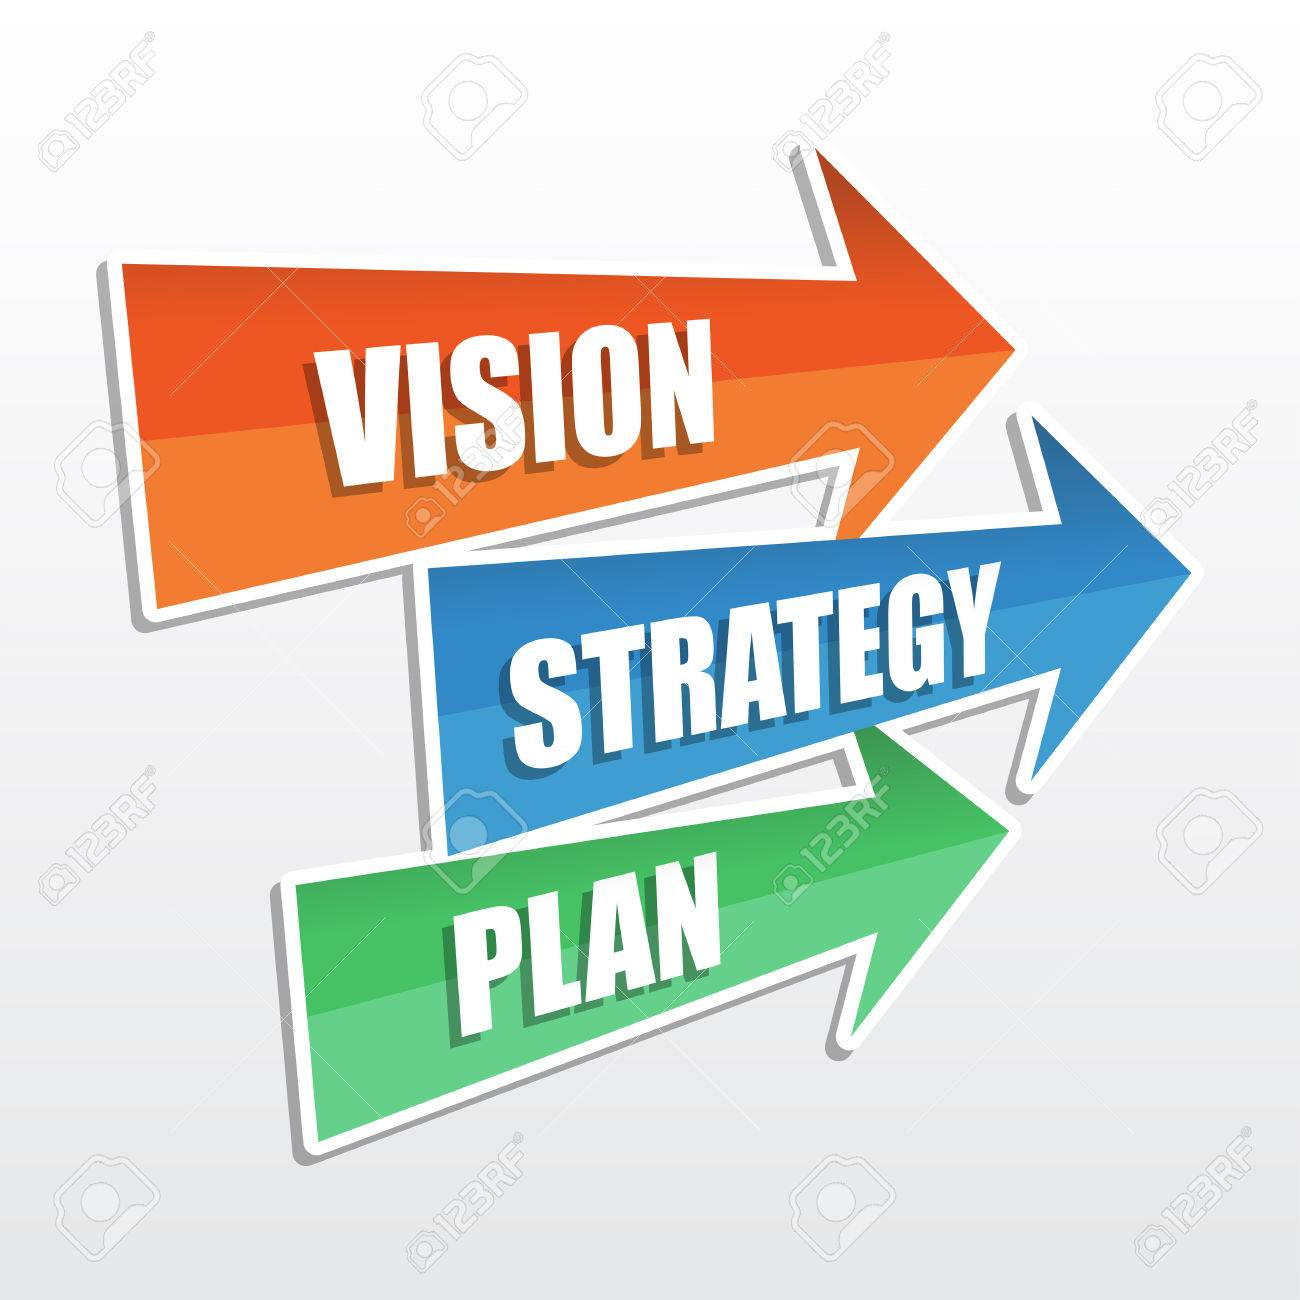 vision, strategy, plan - text in arrows, business development concept, flat design, vector - 60858664